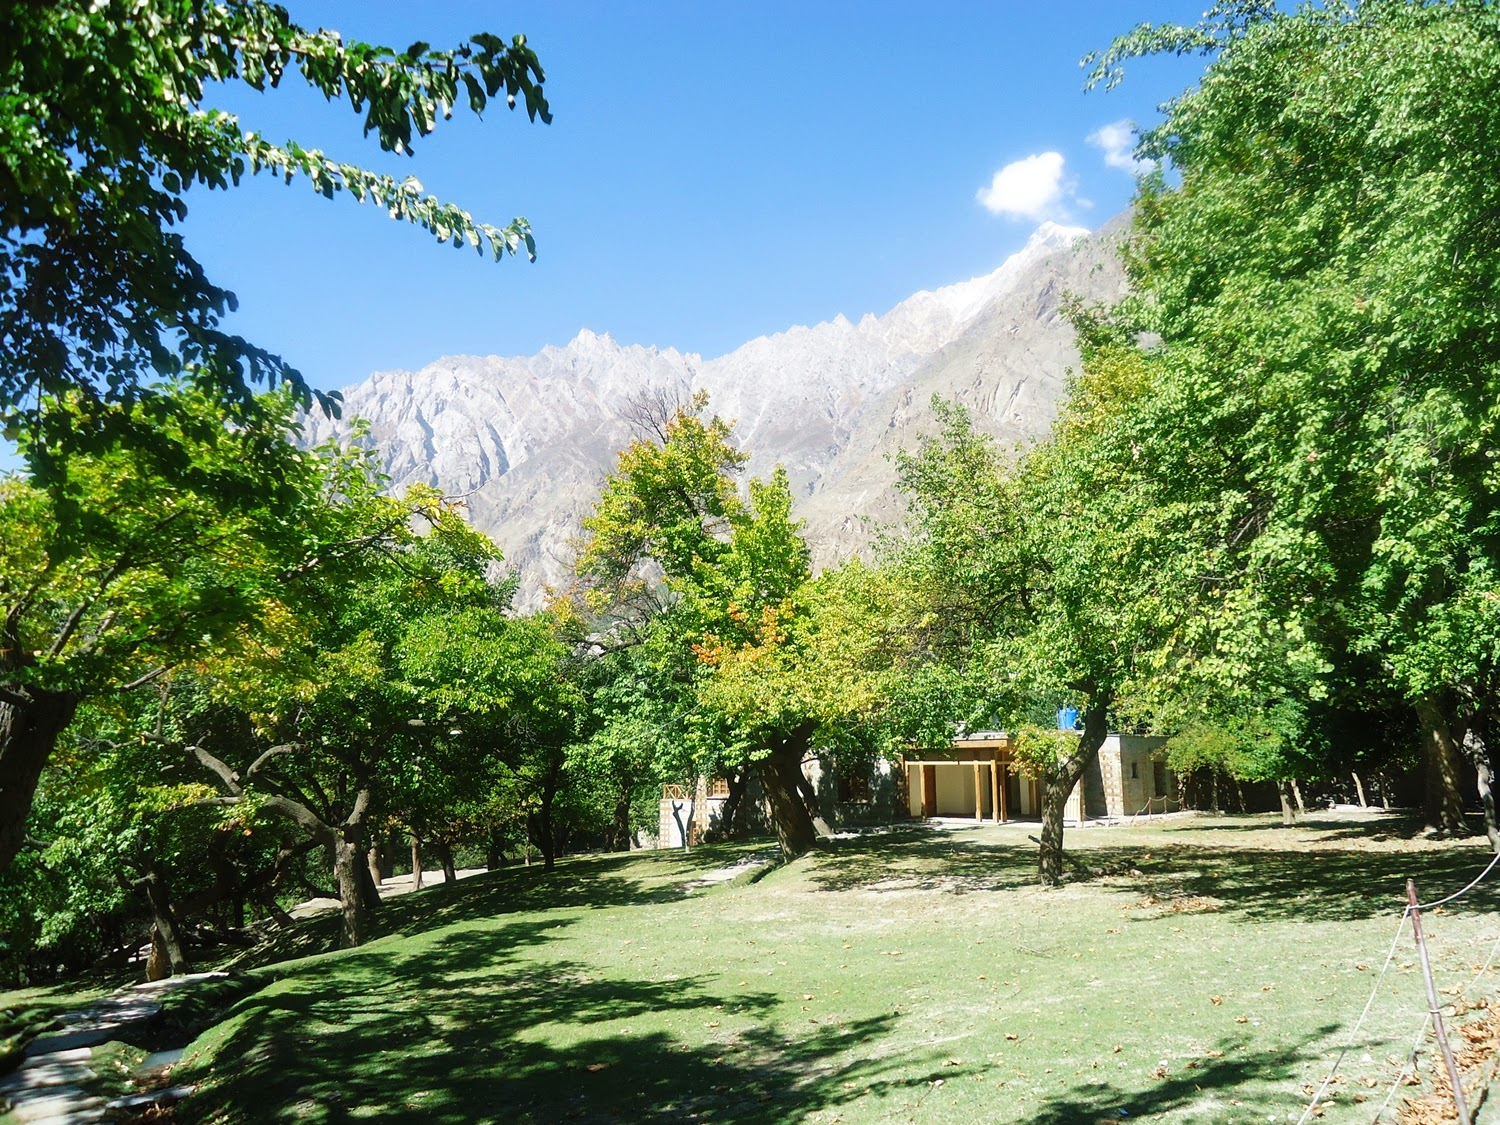 Altit Fort, Hunza Valley (www.prettygloss.blogspot.com)